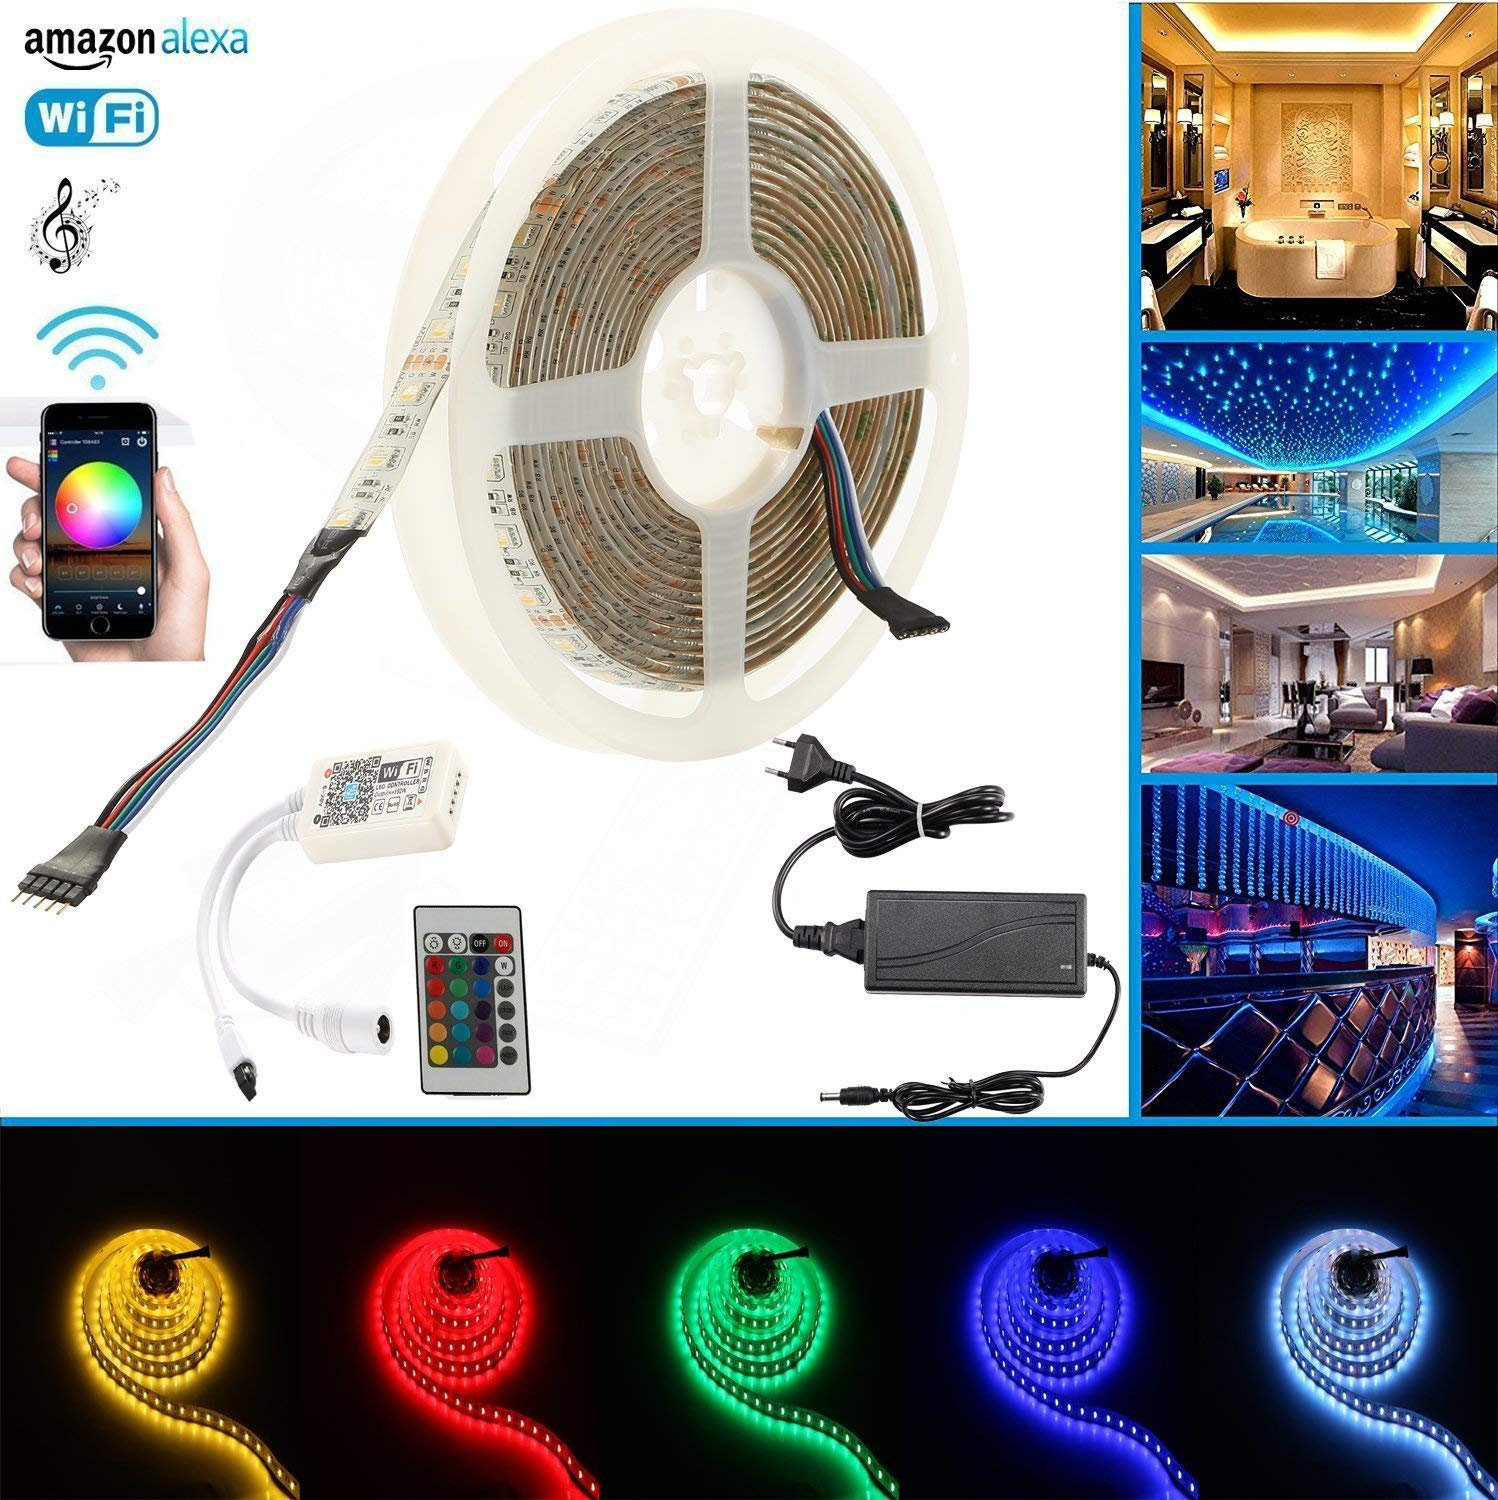 Us 45 Wifi Ip65 Led Strip Lights Rgb Warm White 4 In 1 Wiring As Well Light Ground Free Set Compatible With Alexa Google Home Ifttt Wireless Smart Phone Controlled Full